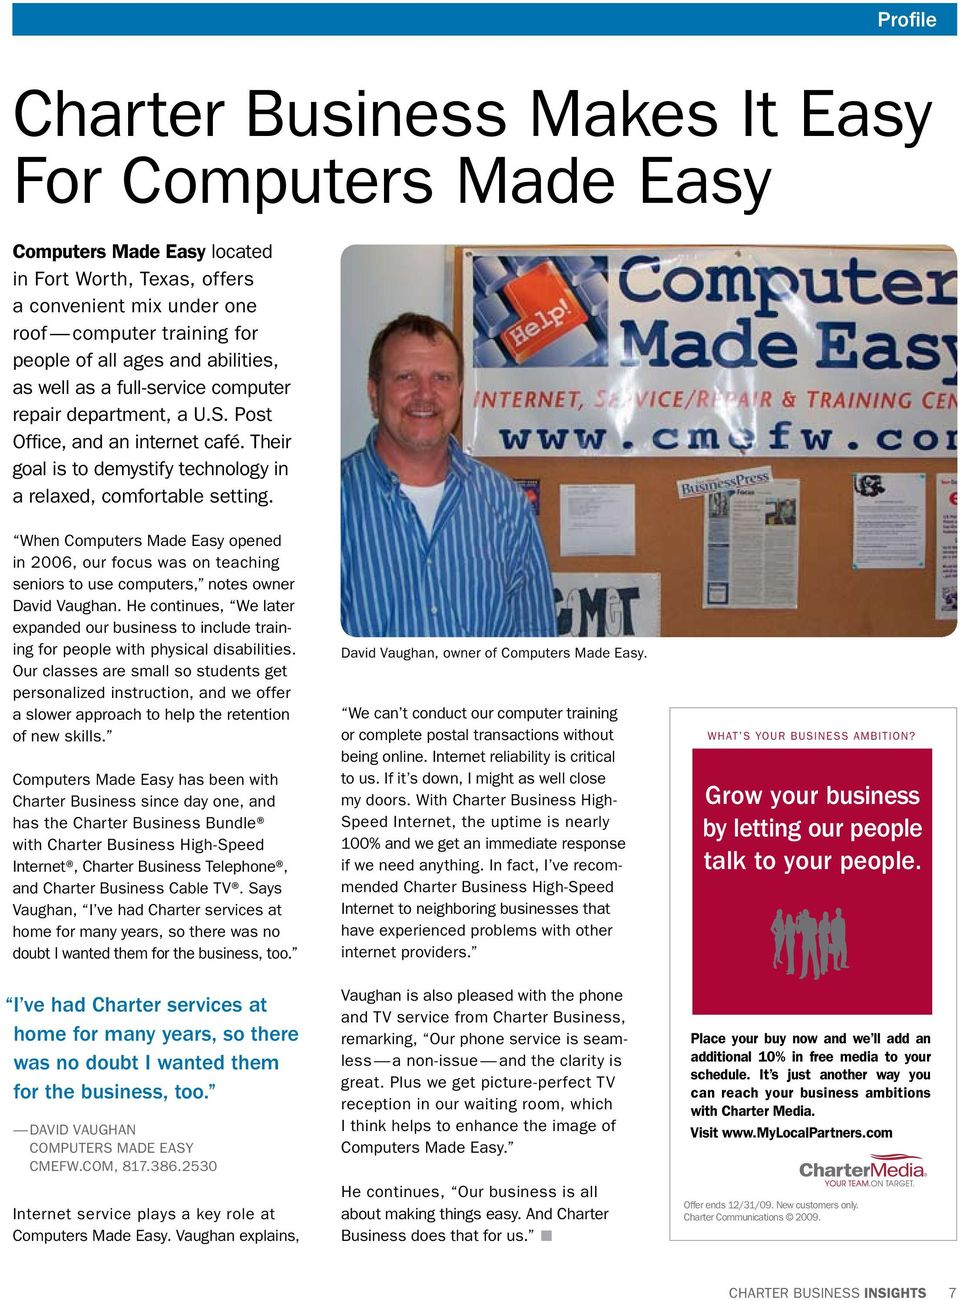 When Computers Made Easy opened in 2006, our focus was on teaching seniors to use computers, notes owner David Vaughan.